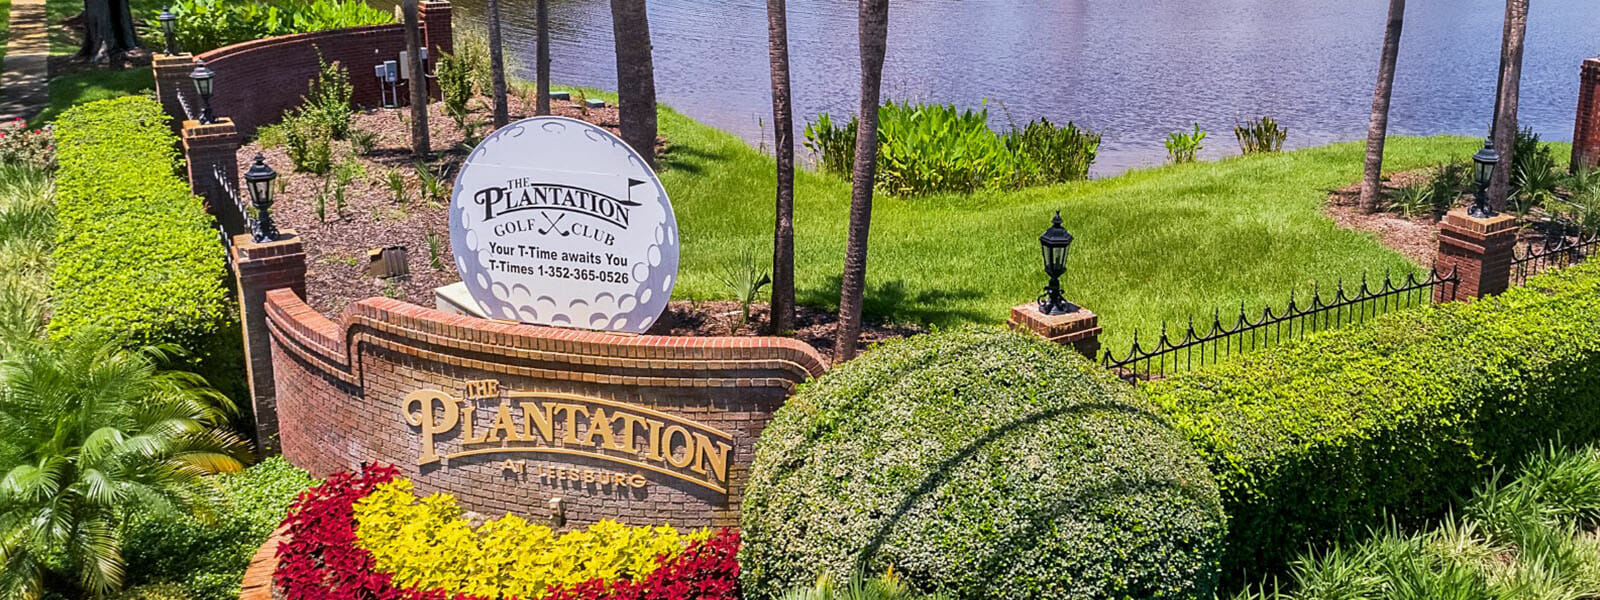 Active 55+ Community near Orlando FL | Plantation at Leesburg | Realty